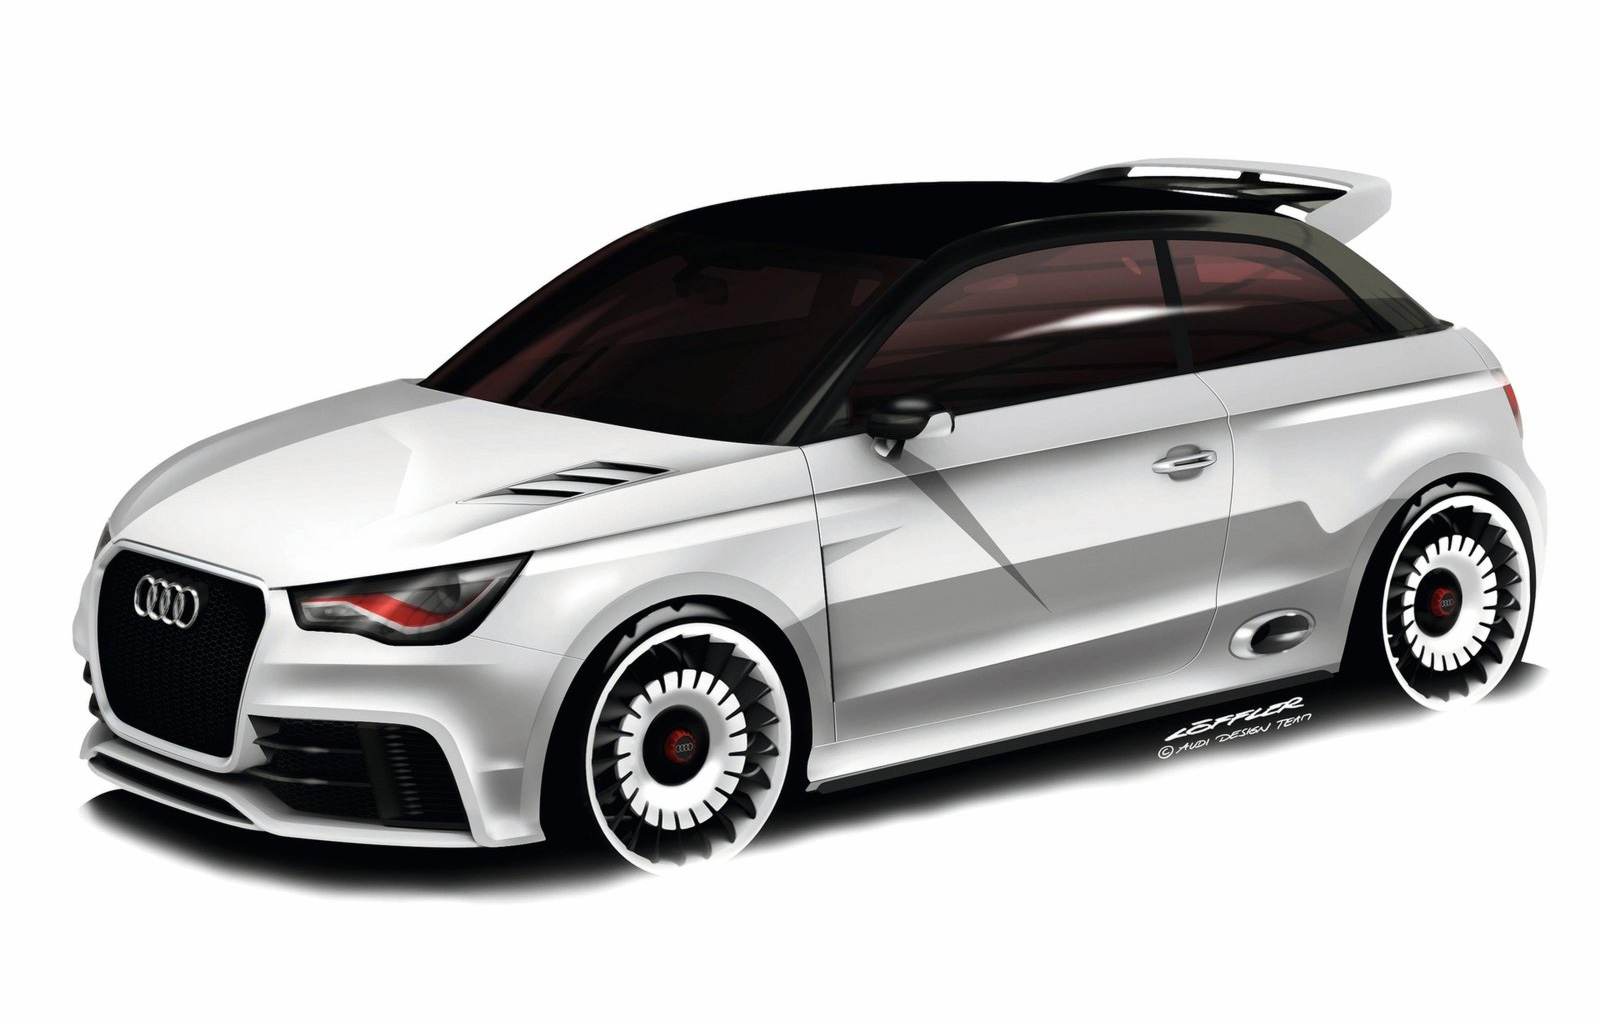 2019 Audi A1 clubsport quattro Concept photo - 5